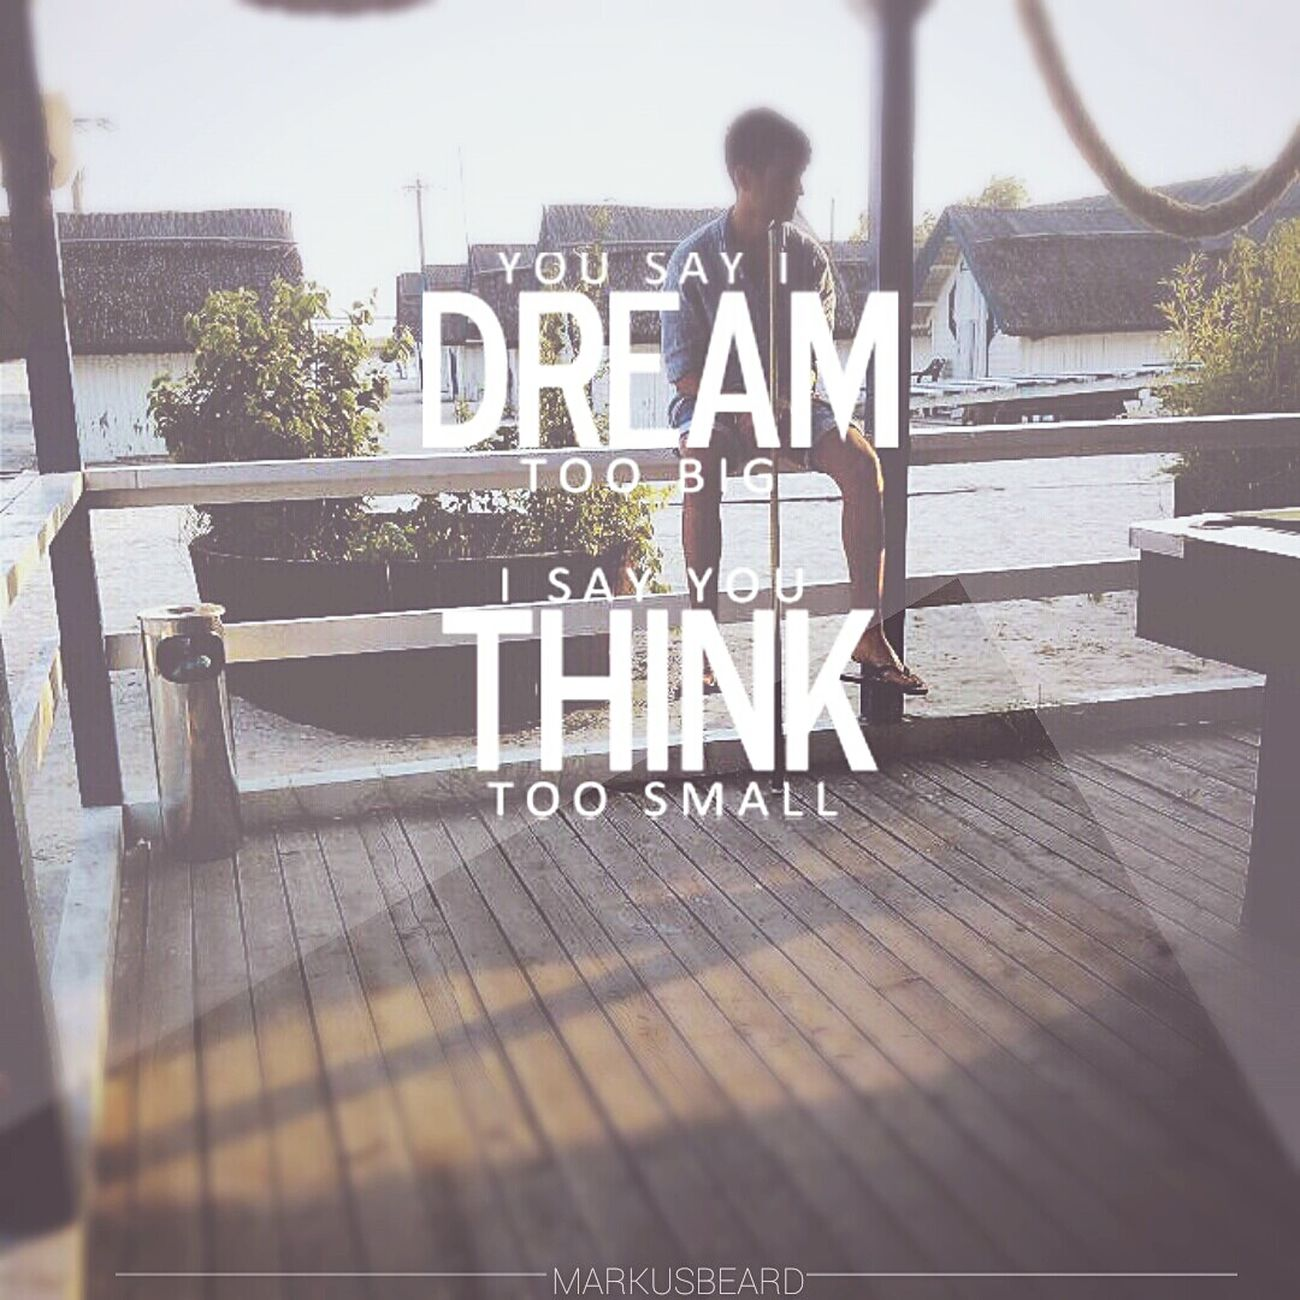 You say i dream too big i say you think too small Enjoying Life Summer Quotes Quoteoftheday Markusbeard MKBEDIT MrMarkusbeard Dream BIG Think